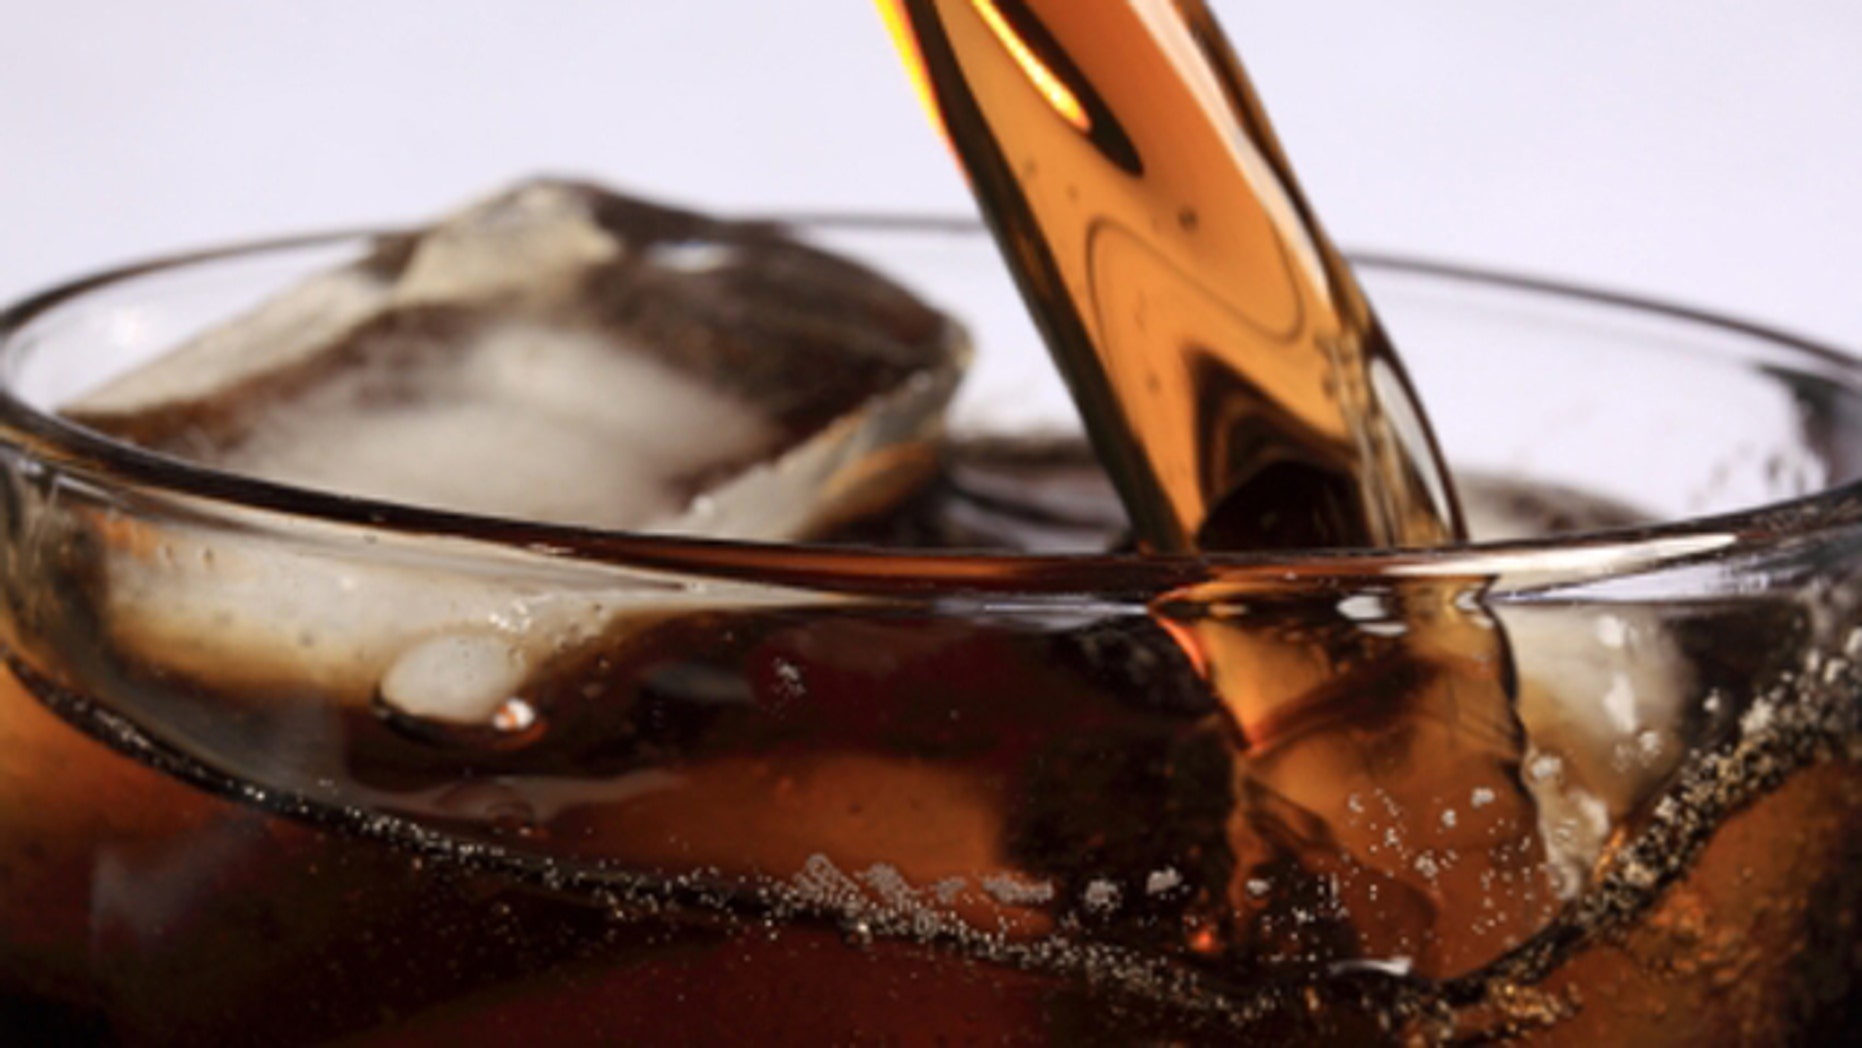 Nearly Half of Americans Drink Soda Daily